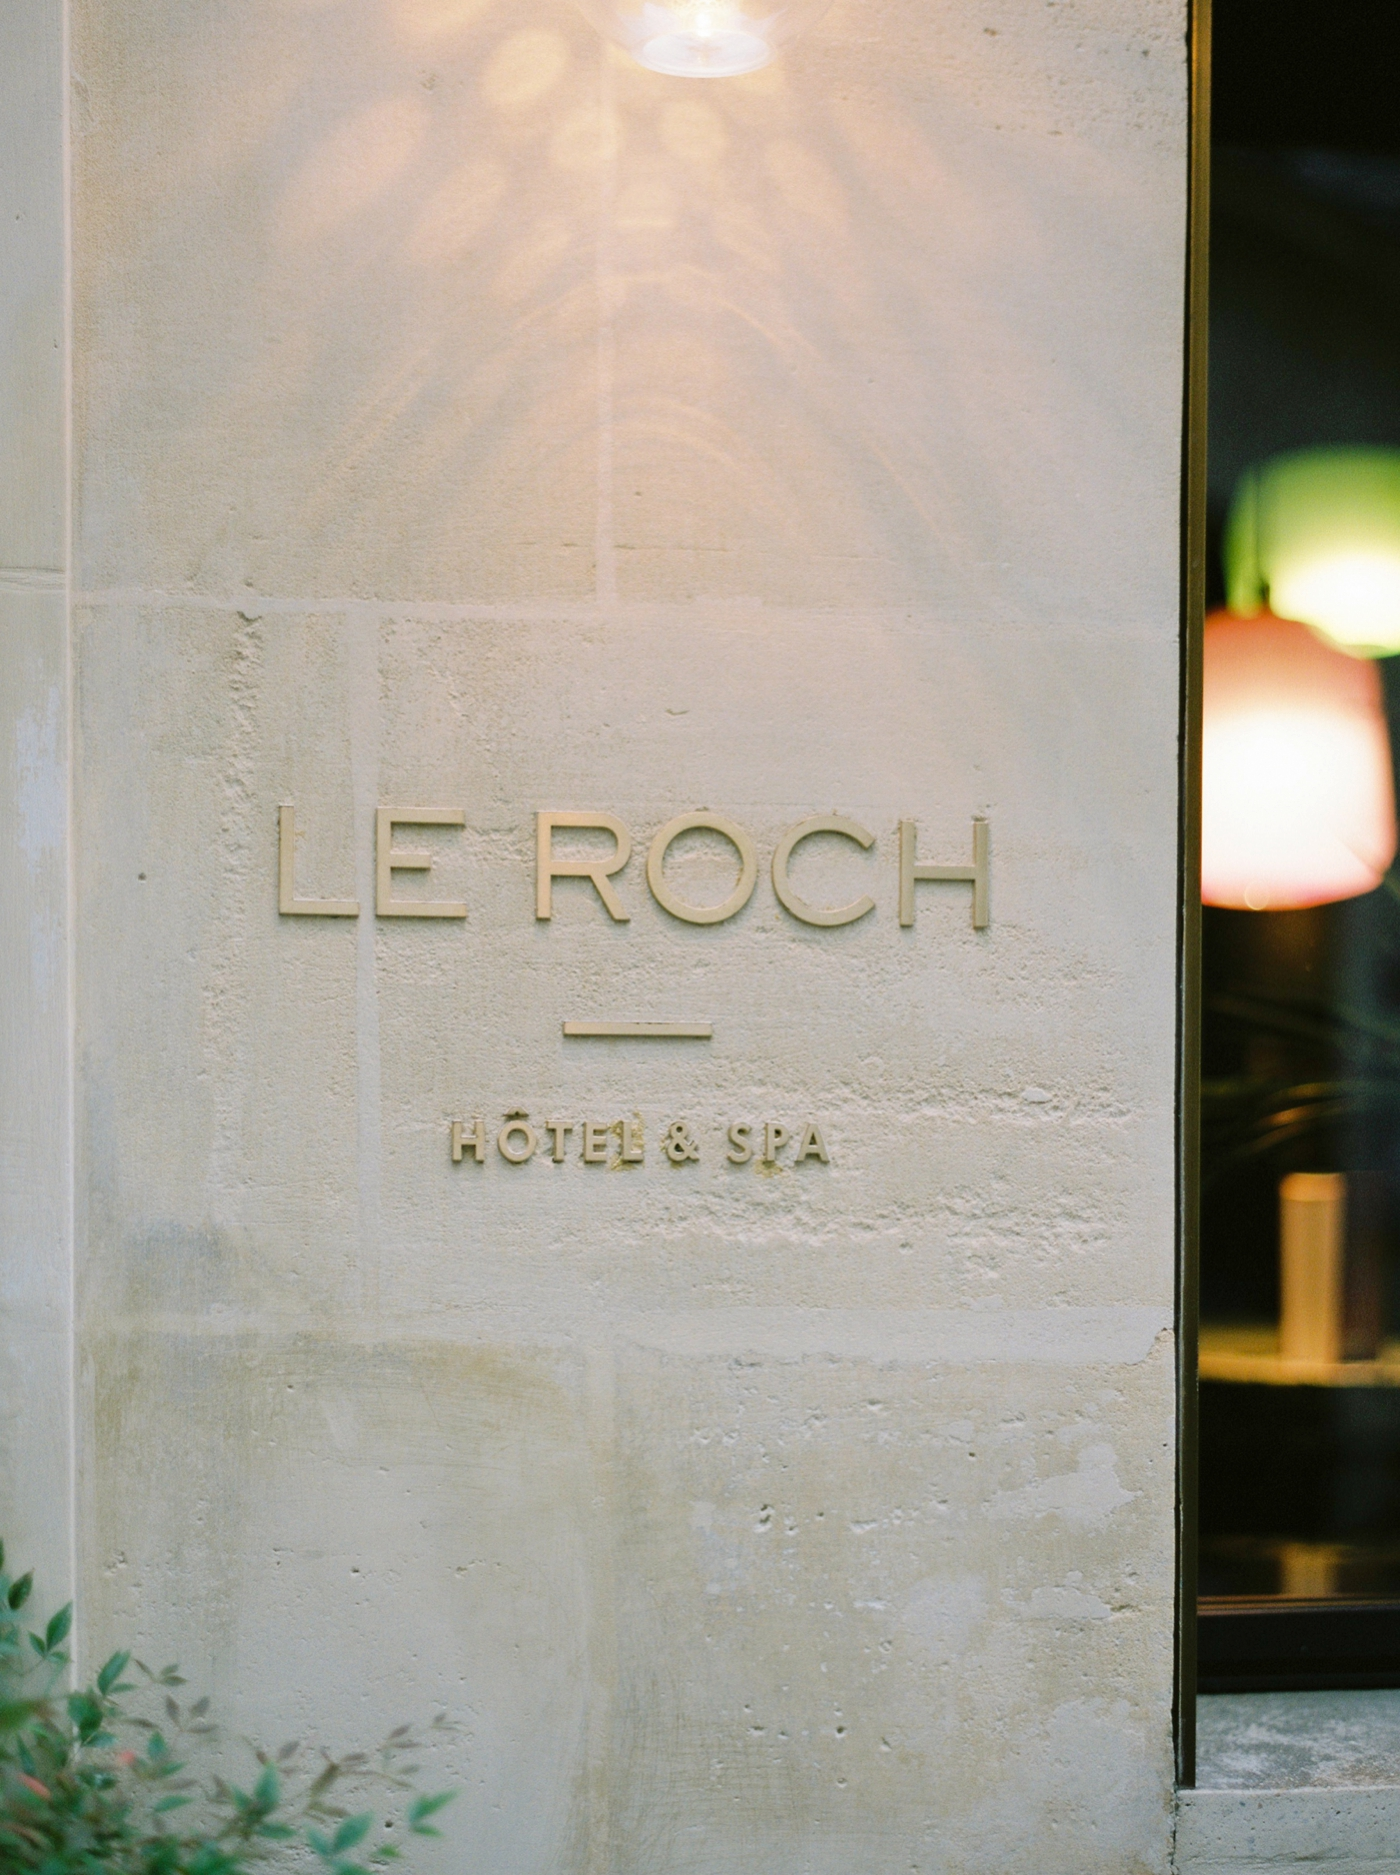 Le Roche Hotel Paris | Commercial and interior photographers | Justine milton film photographer